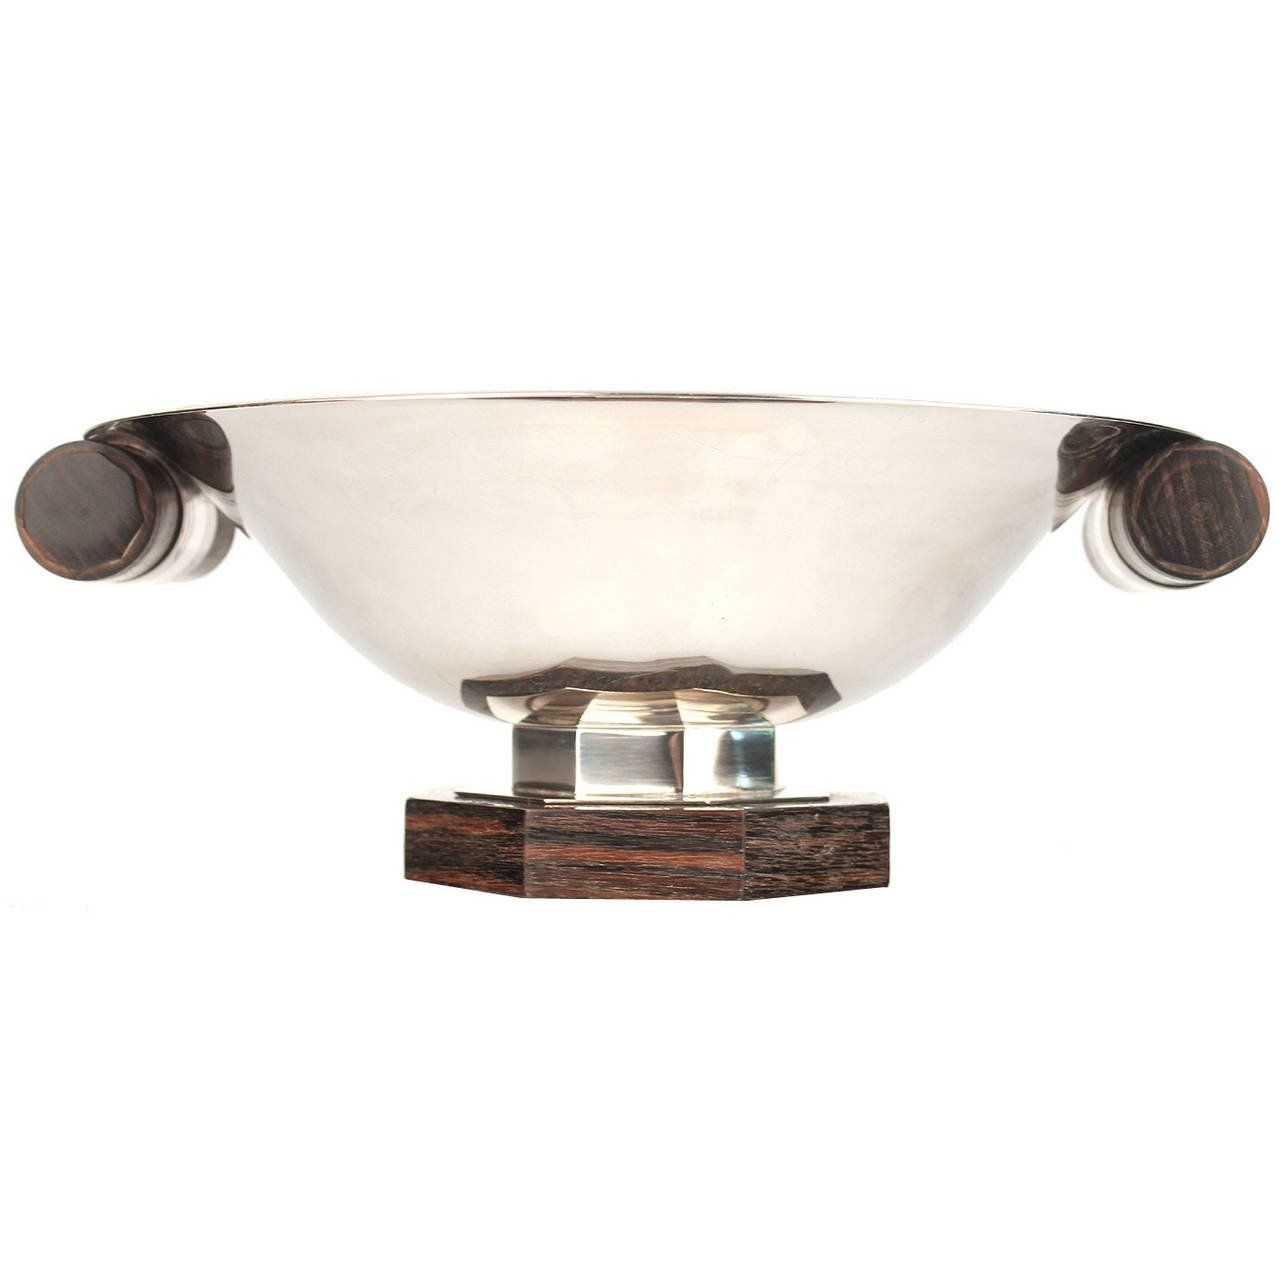 Unique Decorative Bowls French Art Deco Silver Plate Bowl With Rosewood Accents 1930S